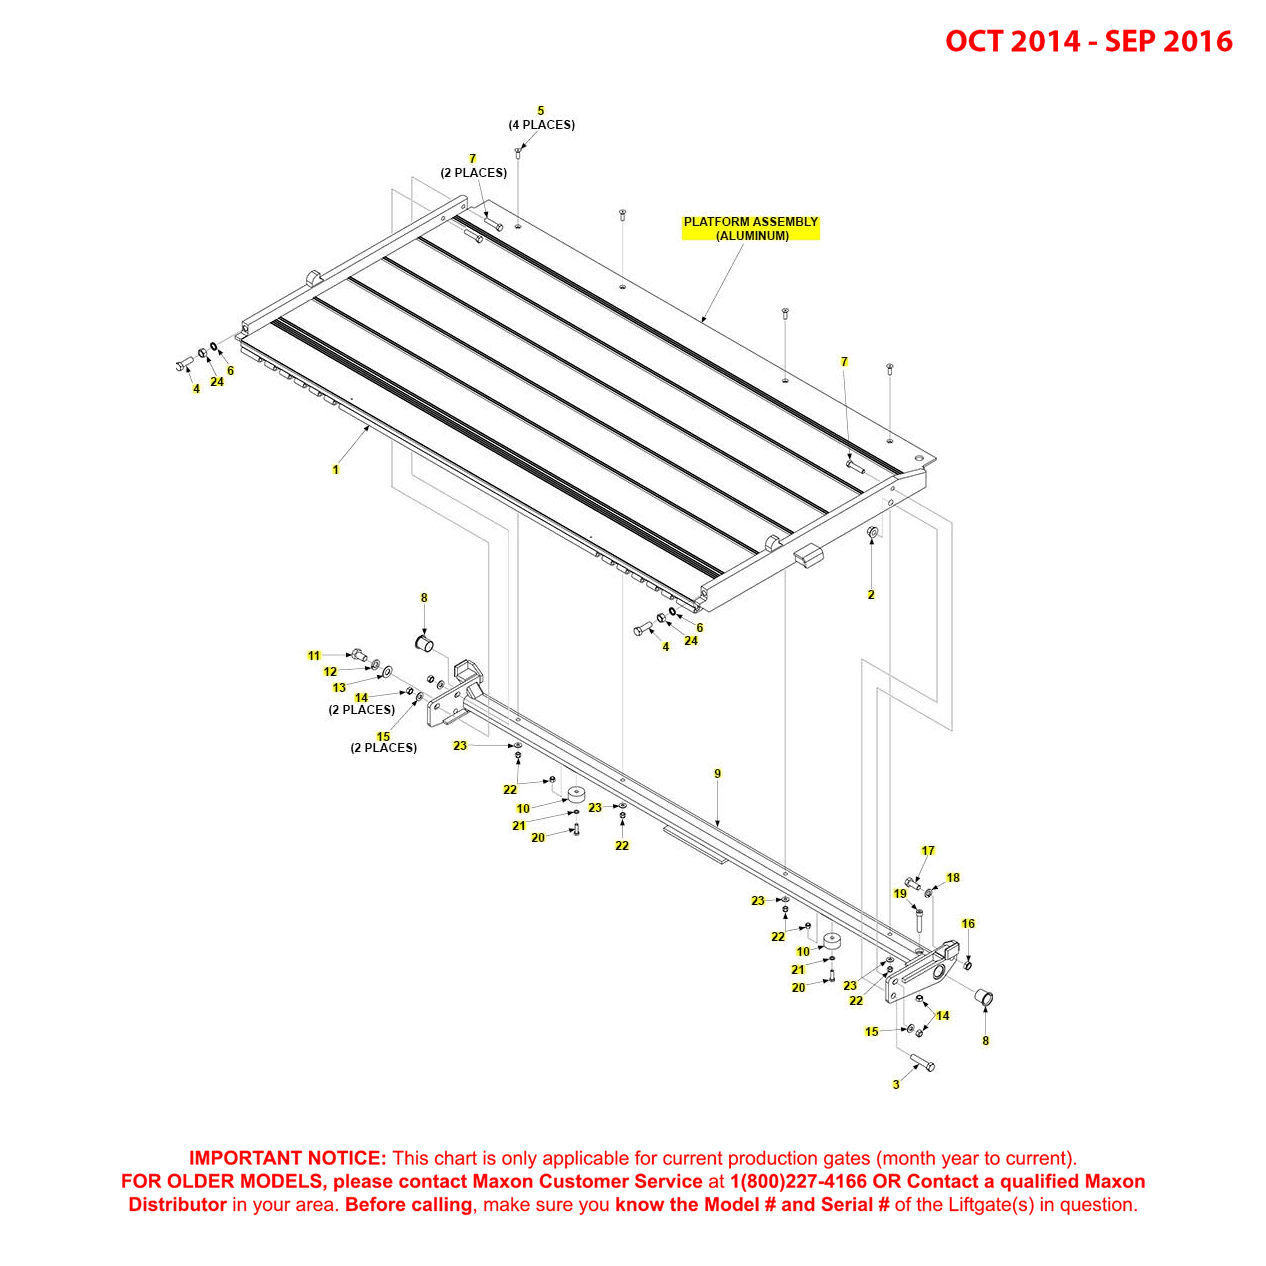 BMR (Oct 2014 - Sep 2016) Aluminum Platform Assembly Diagram